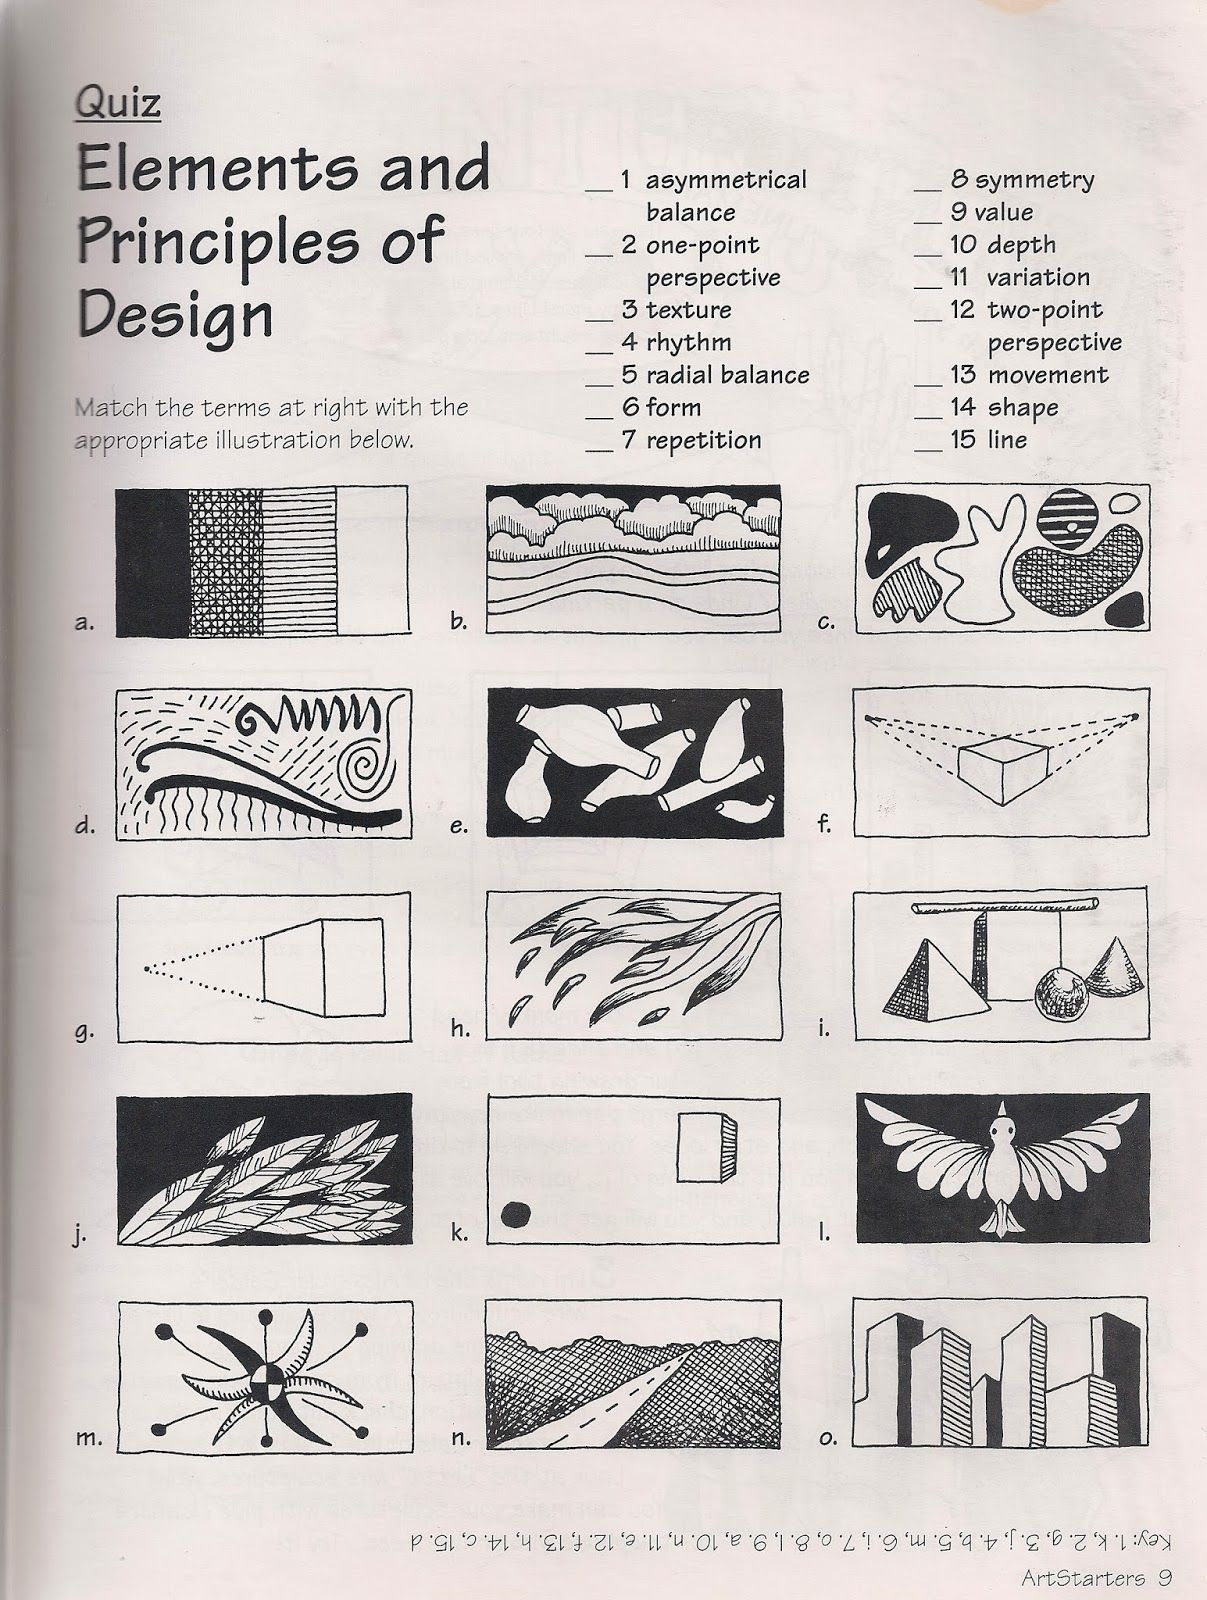 Seven Principles Of Design In Art : No corner suns the elements and principles of art